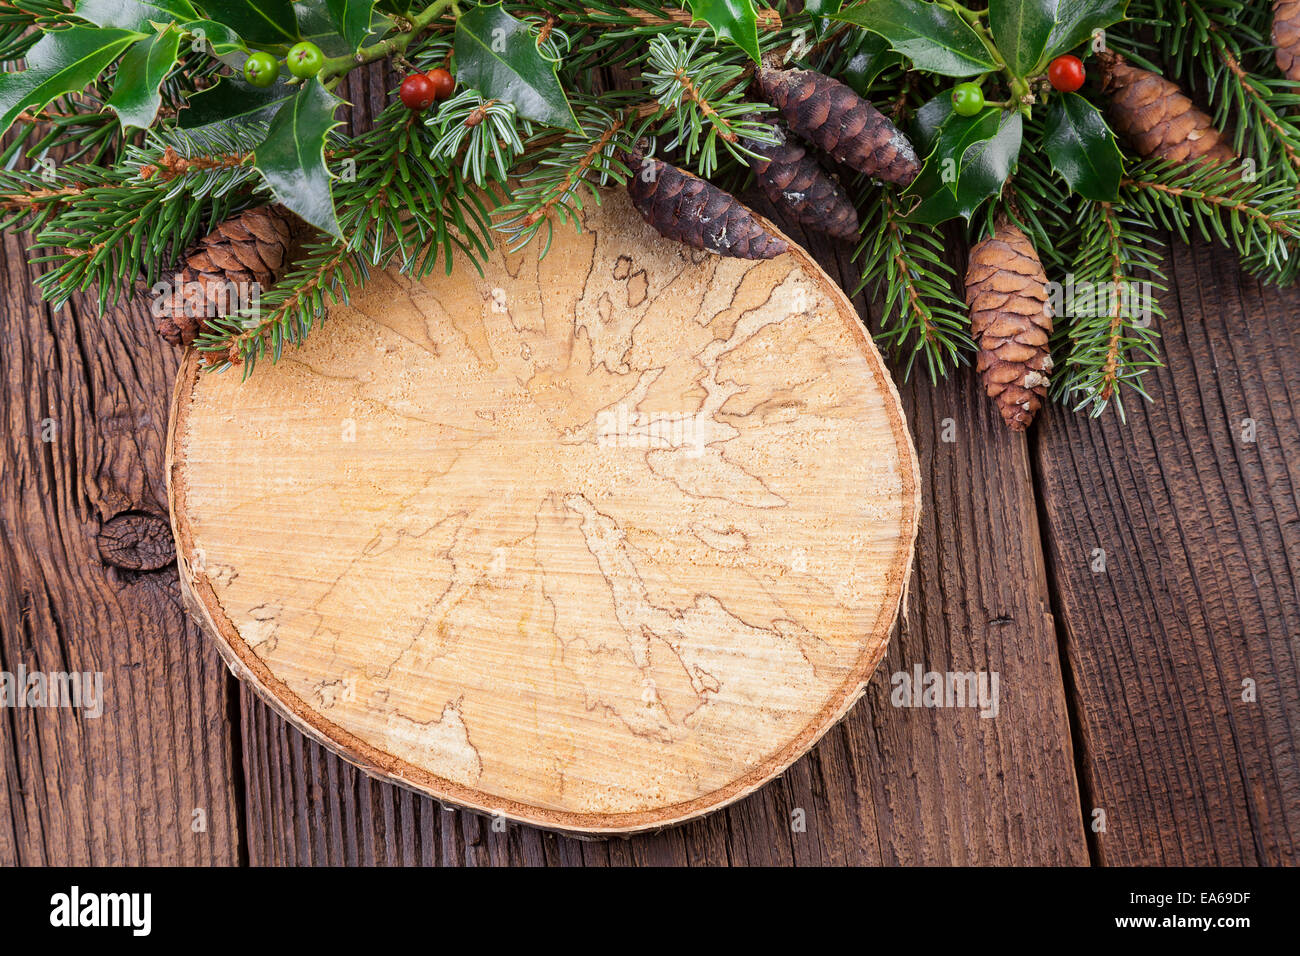 Tree Ring Stock Photos & Tree Ring Stock Images - Alamy